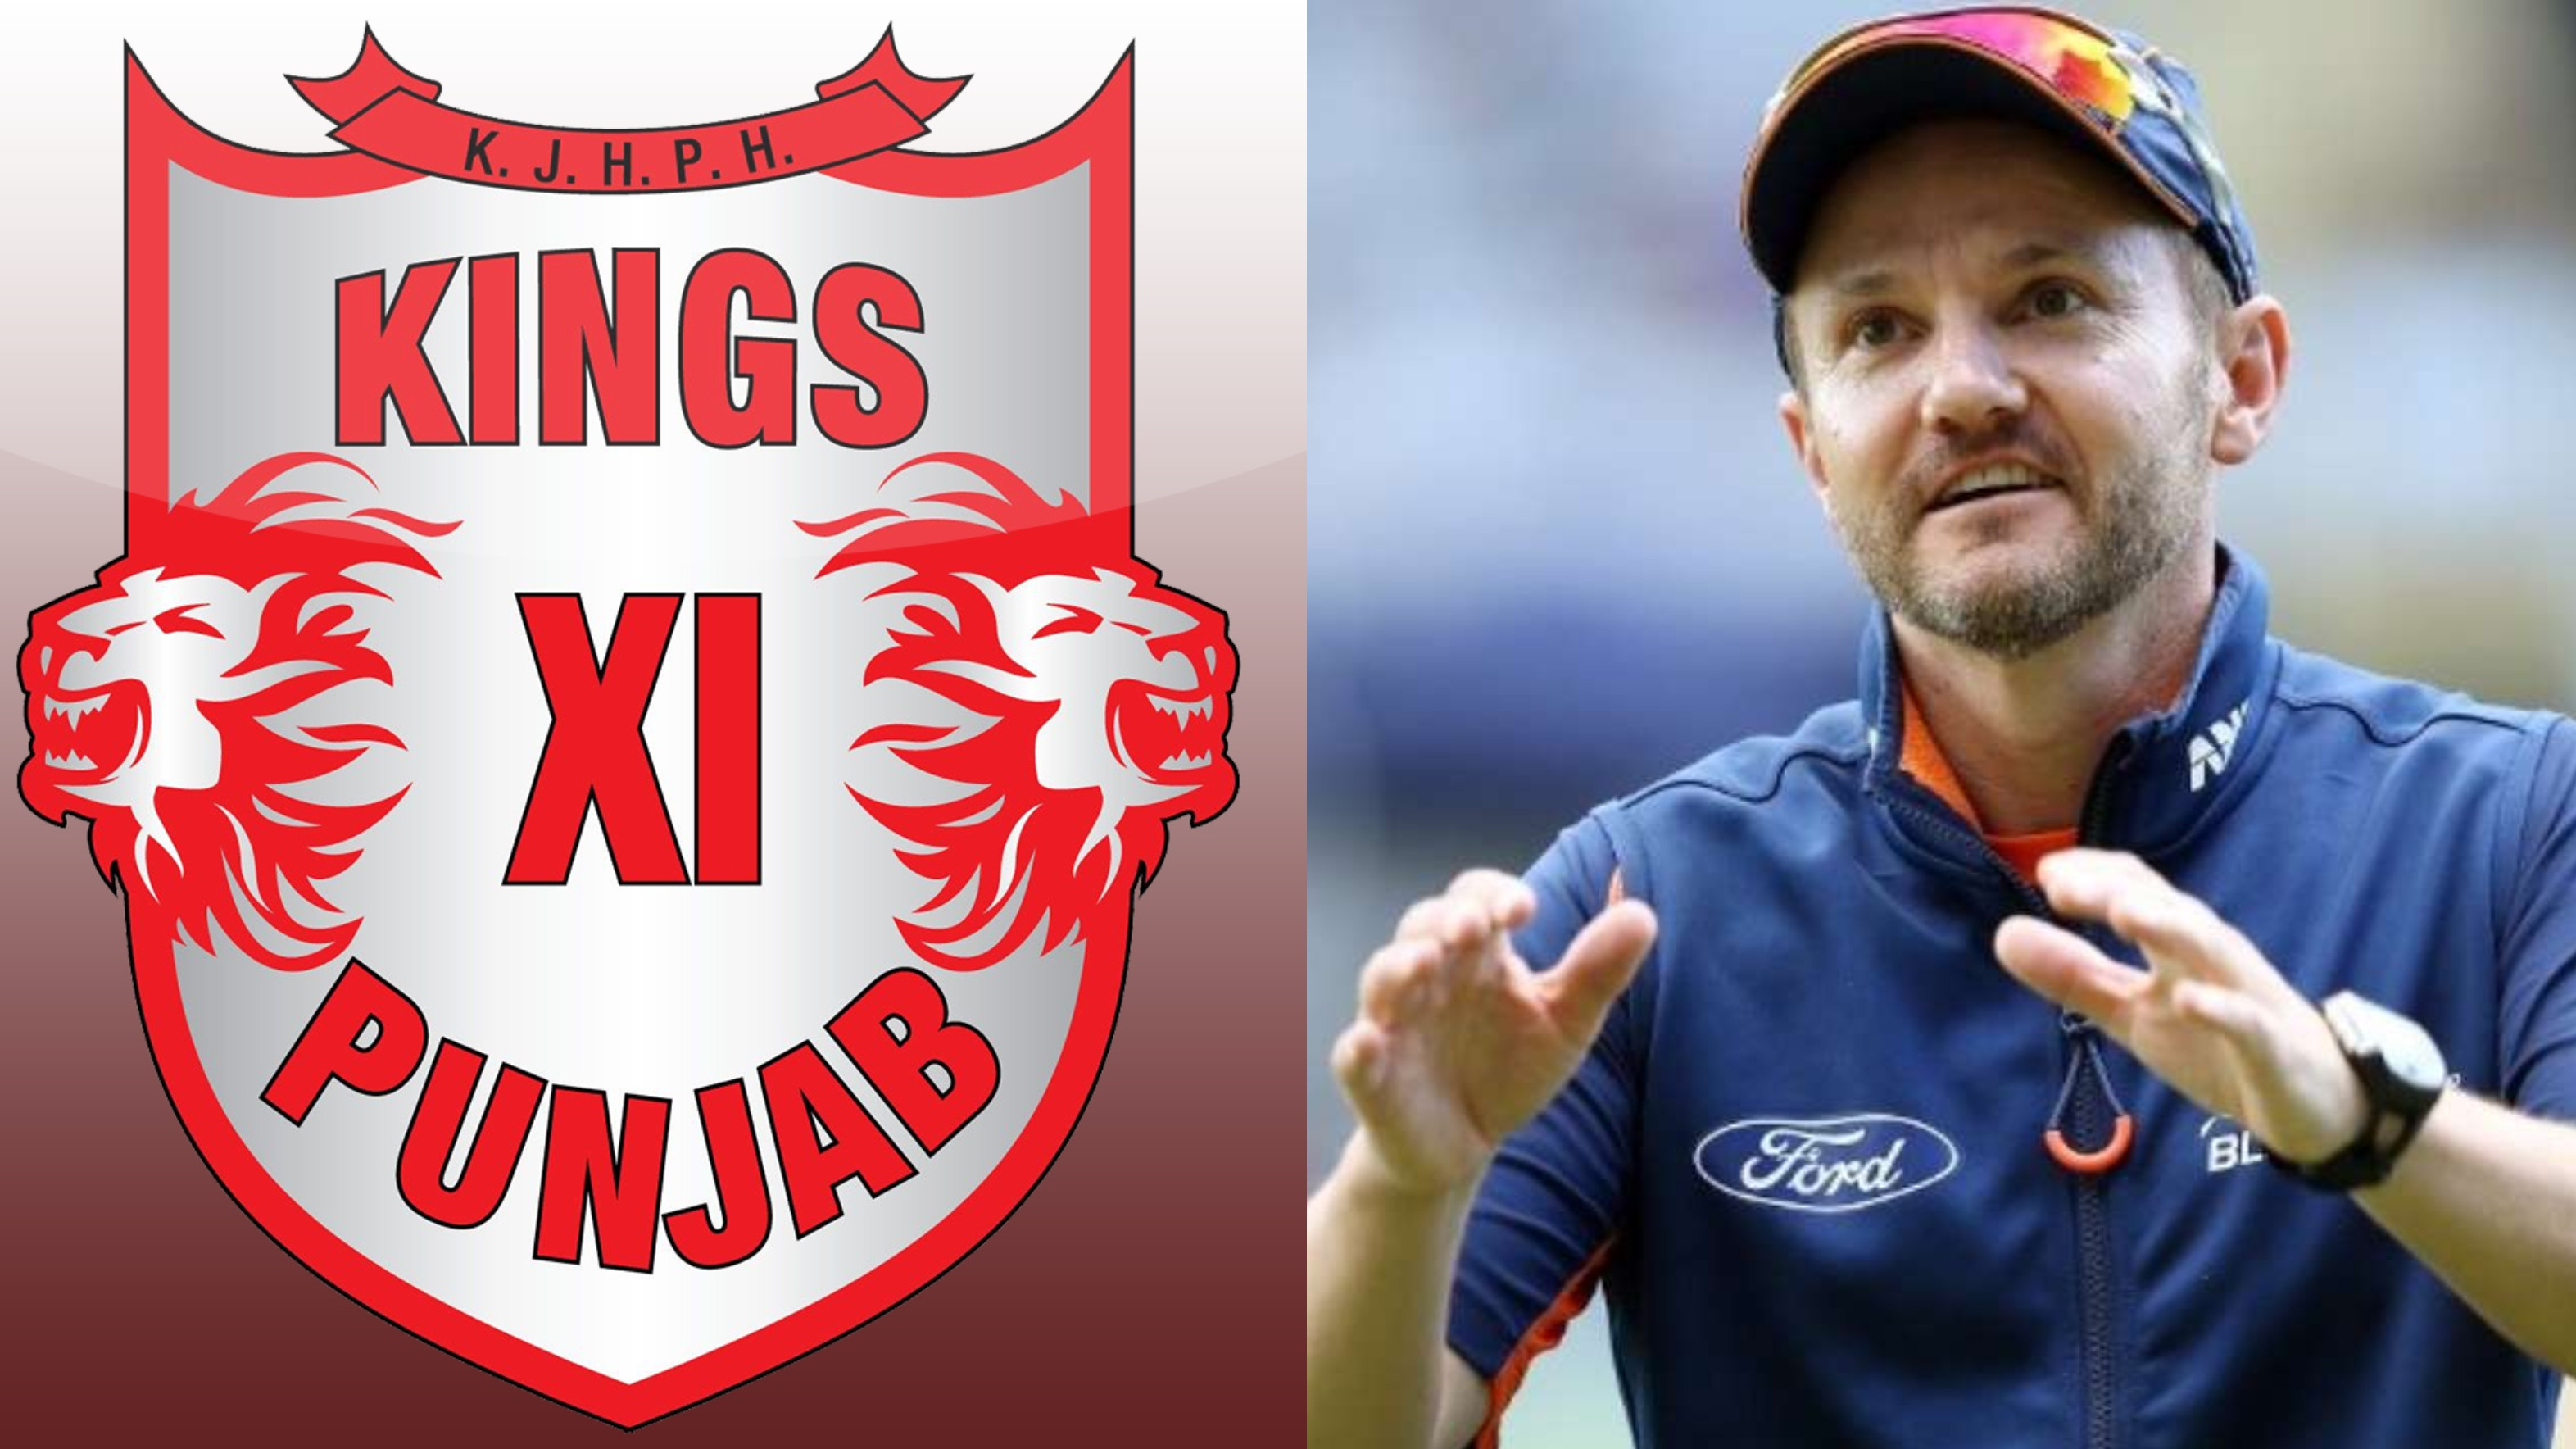 IPL 2019: Mike Hesson to coach Kings XI Punjab in the tournament